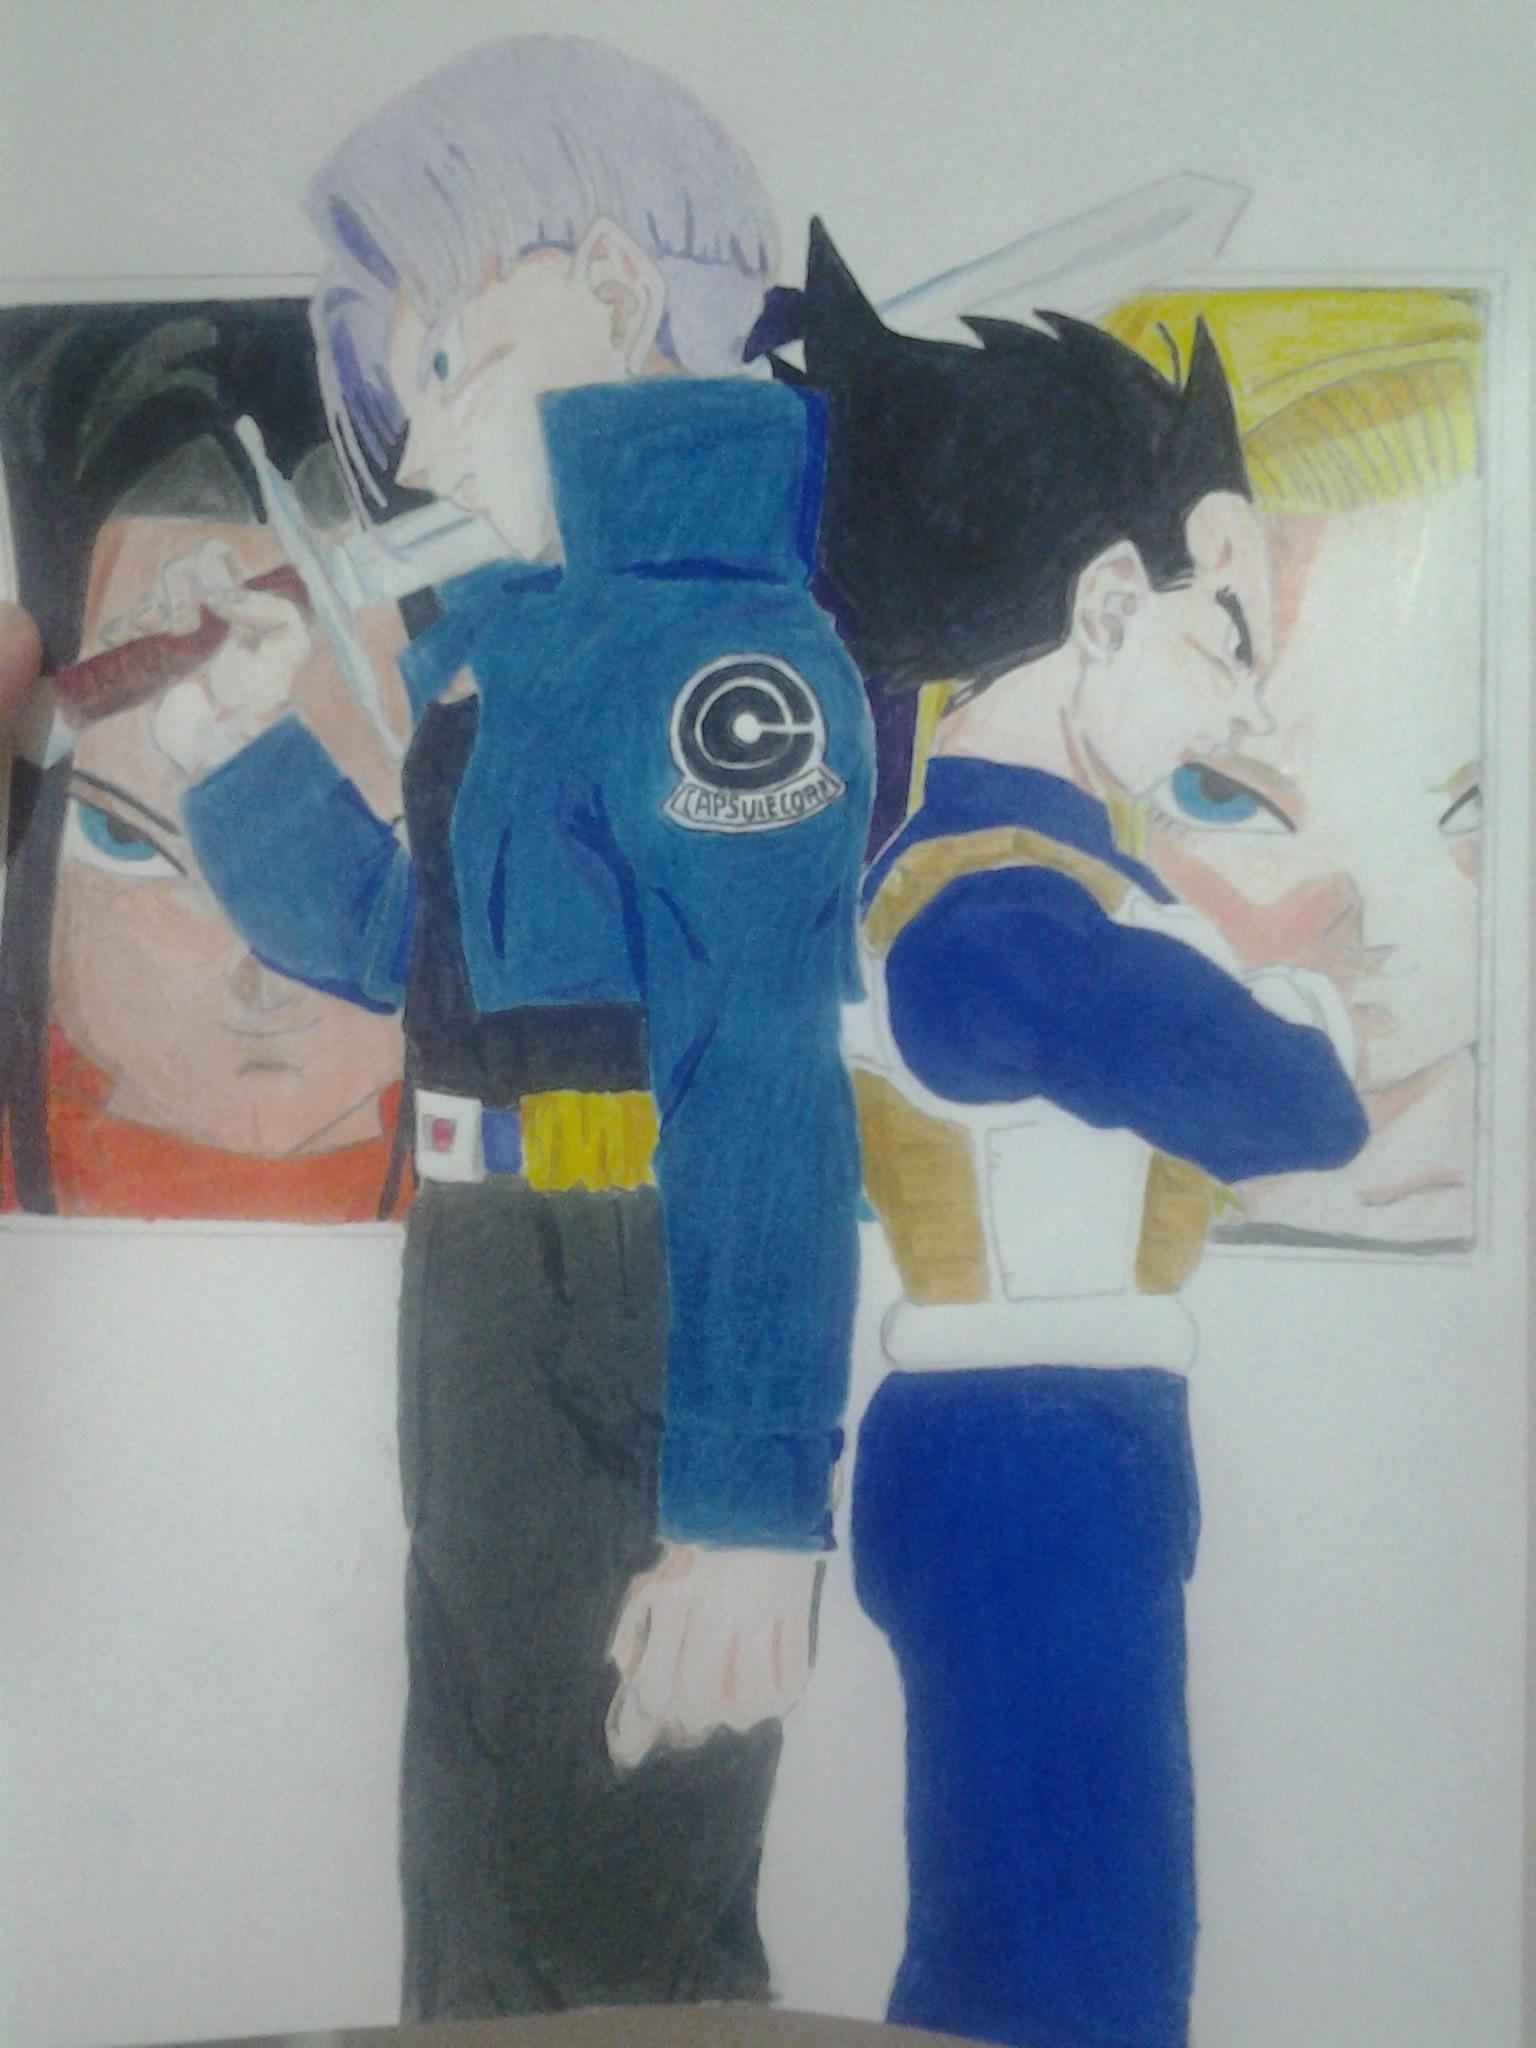 Mi tributo a Trunks y Vegeta (Dibujo propio)